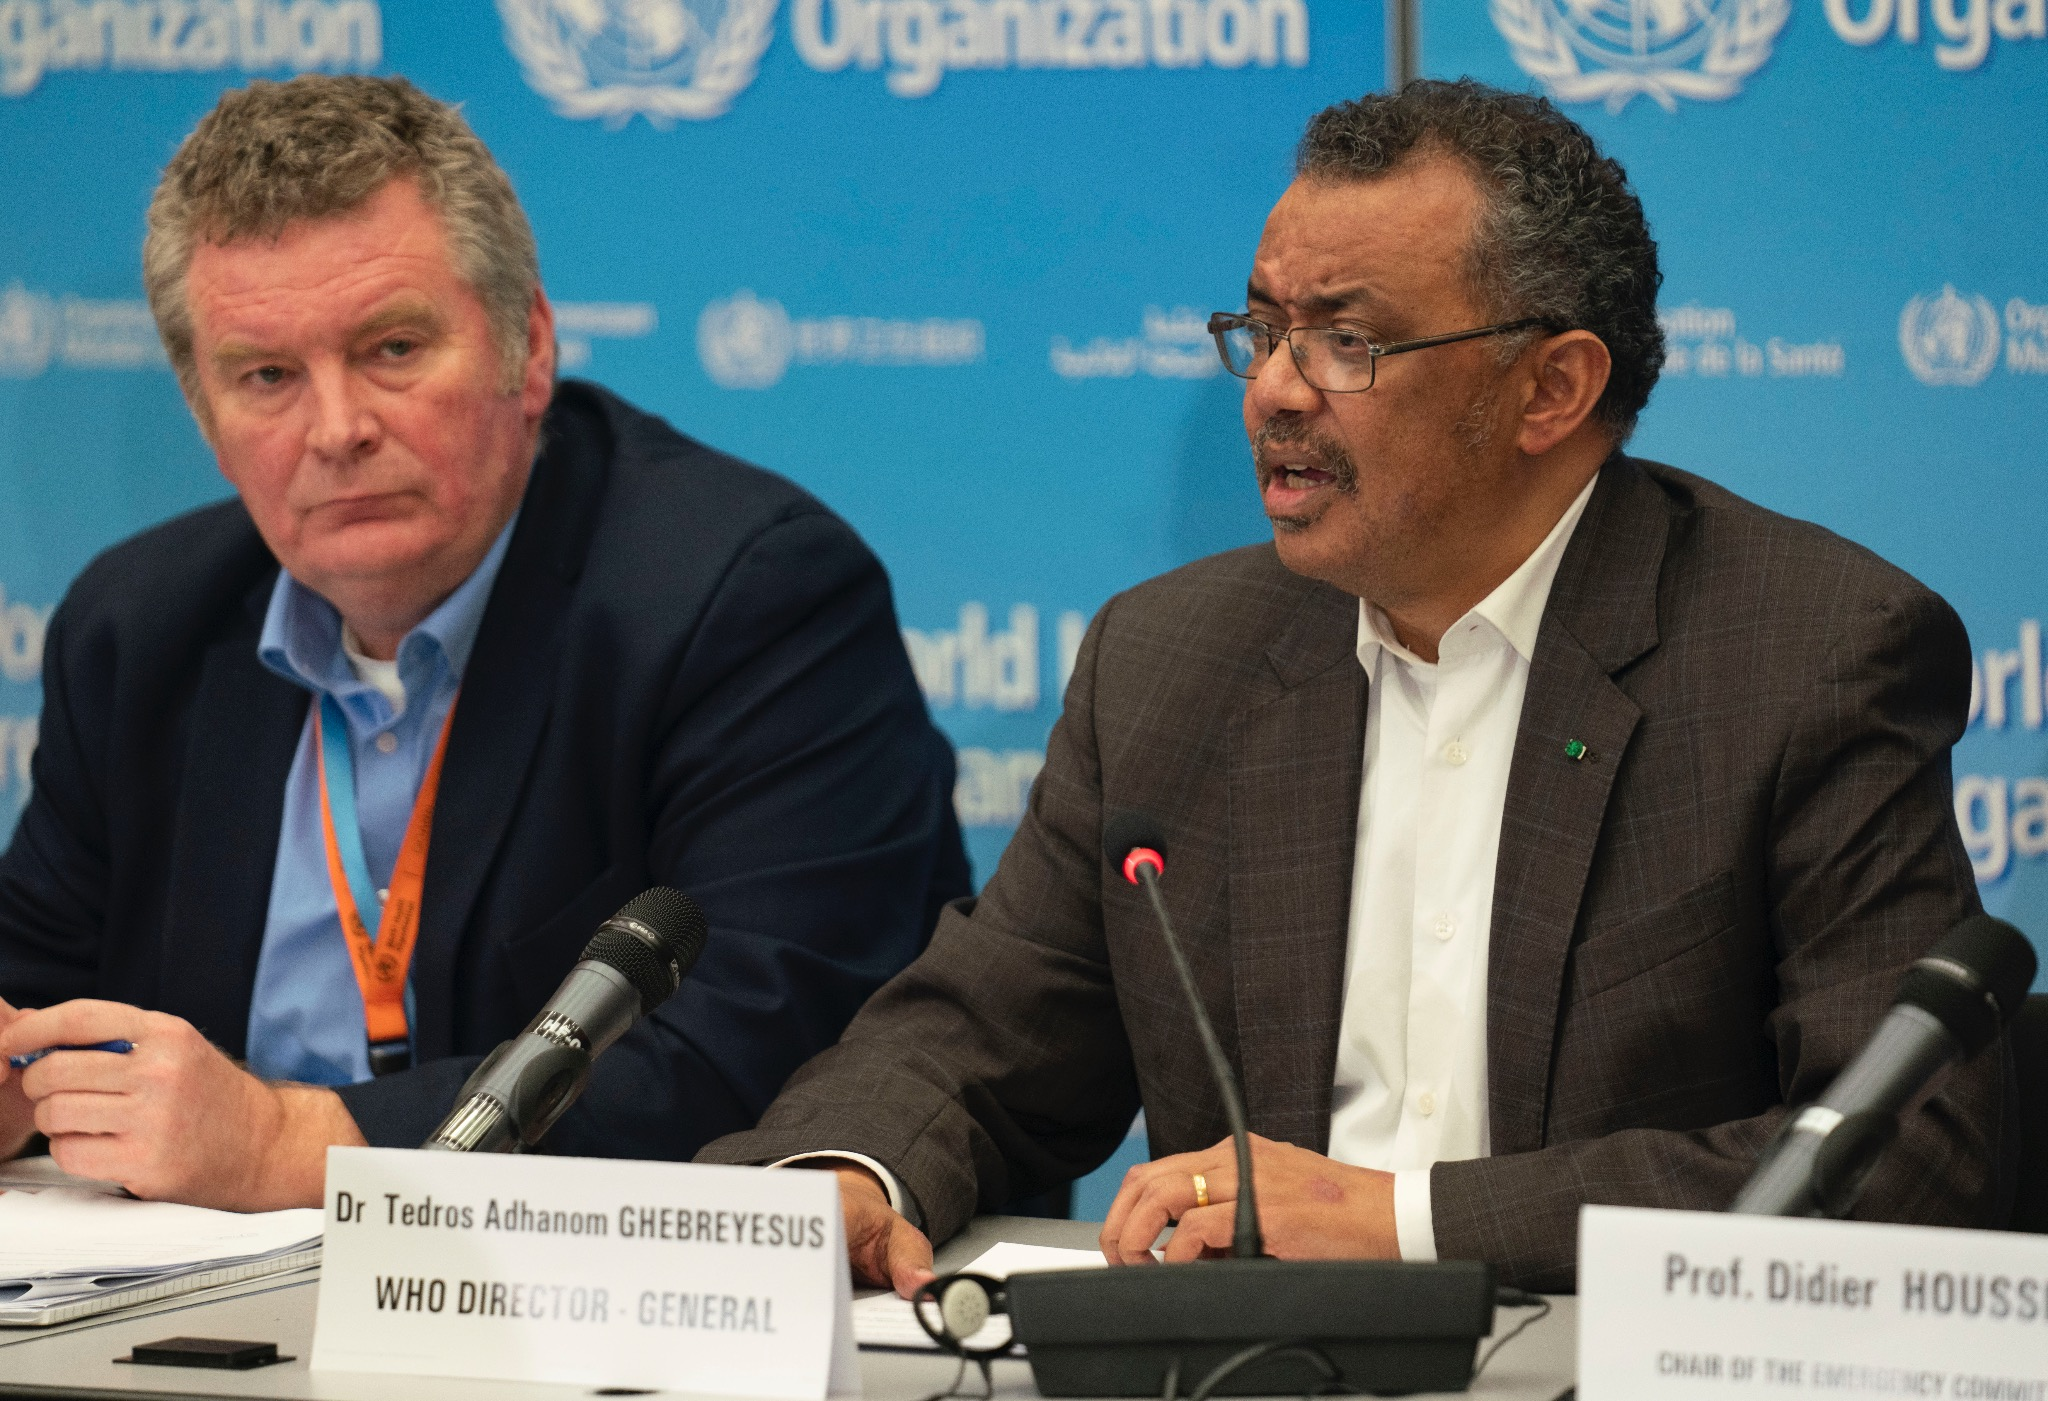 World Health Organization director-general Dr. Tedros Adhanom Ghebreyesus (right). Photo courtesy: Twitter/@WHO